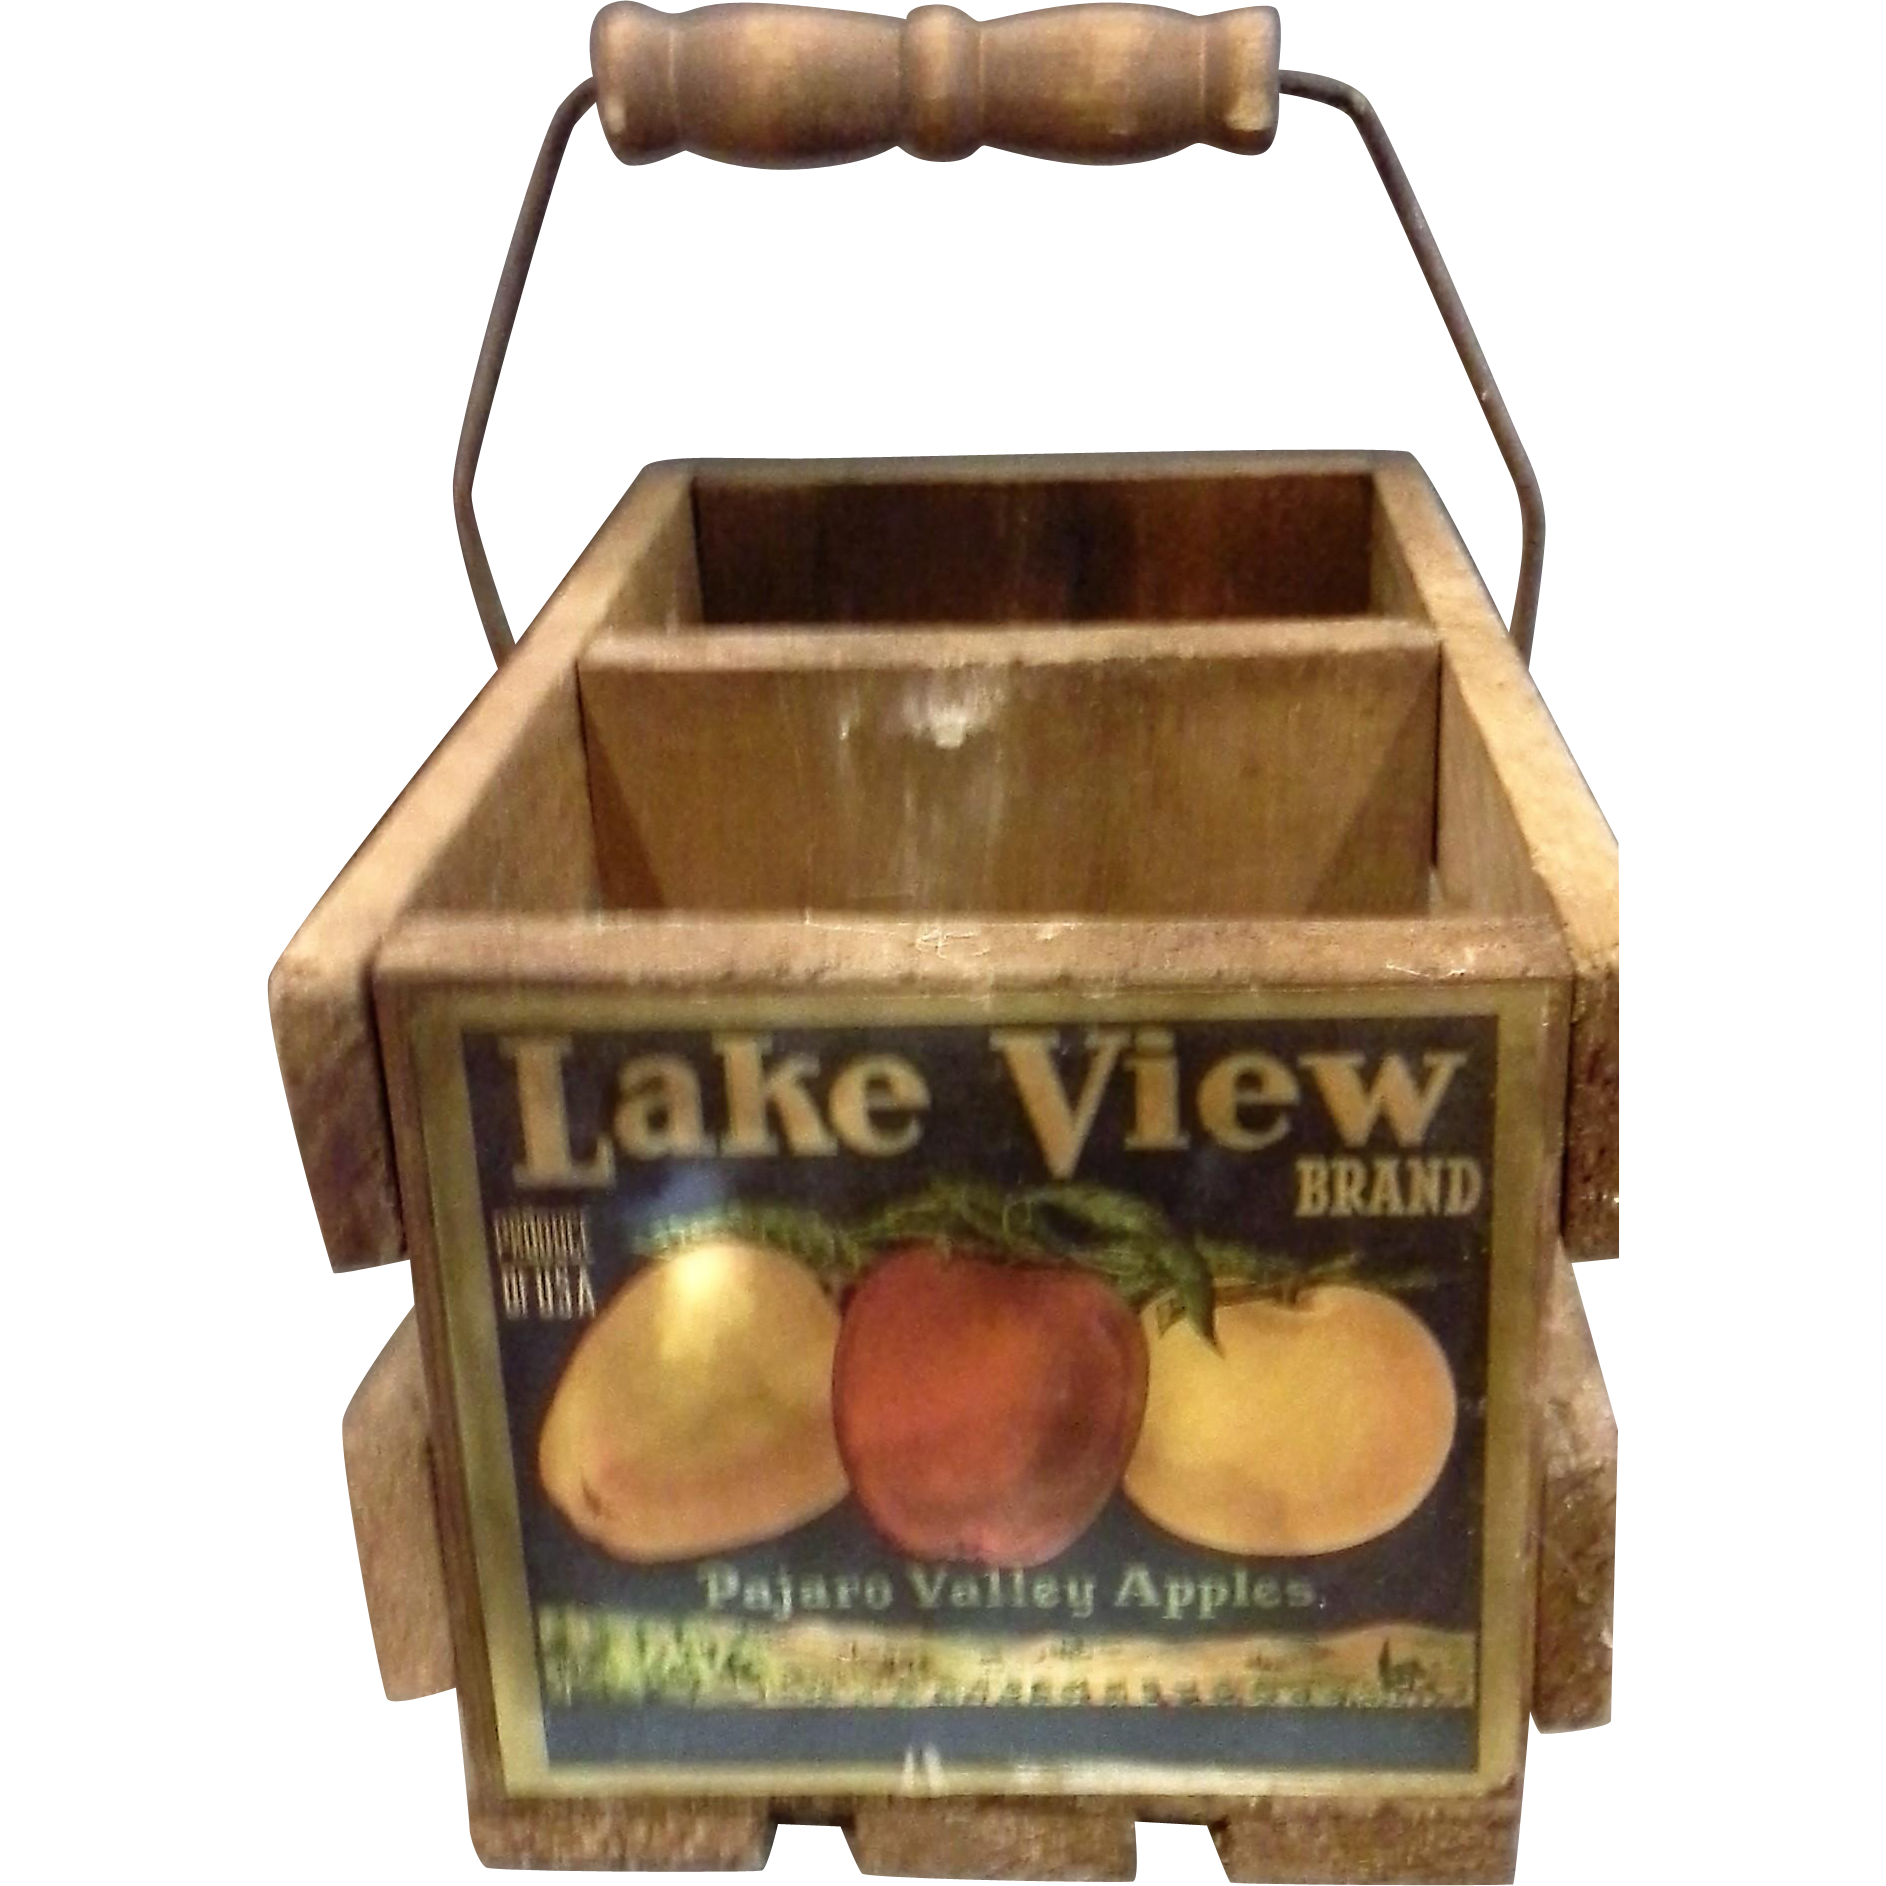 Lake View Brand Pajaro Valley Apples Wooden Divided Basket Advertising